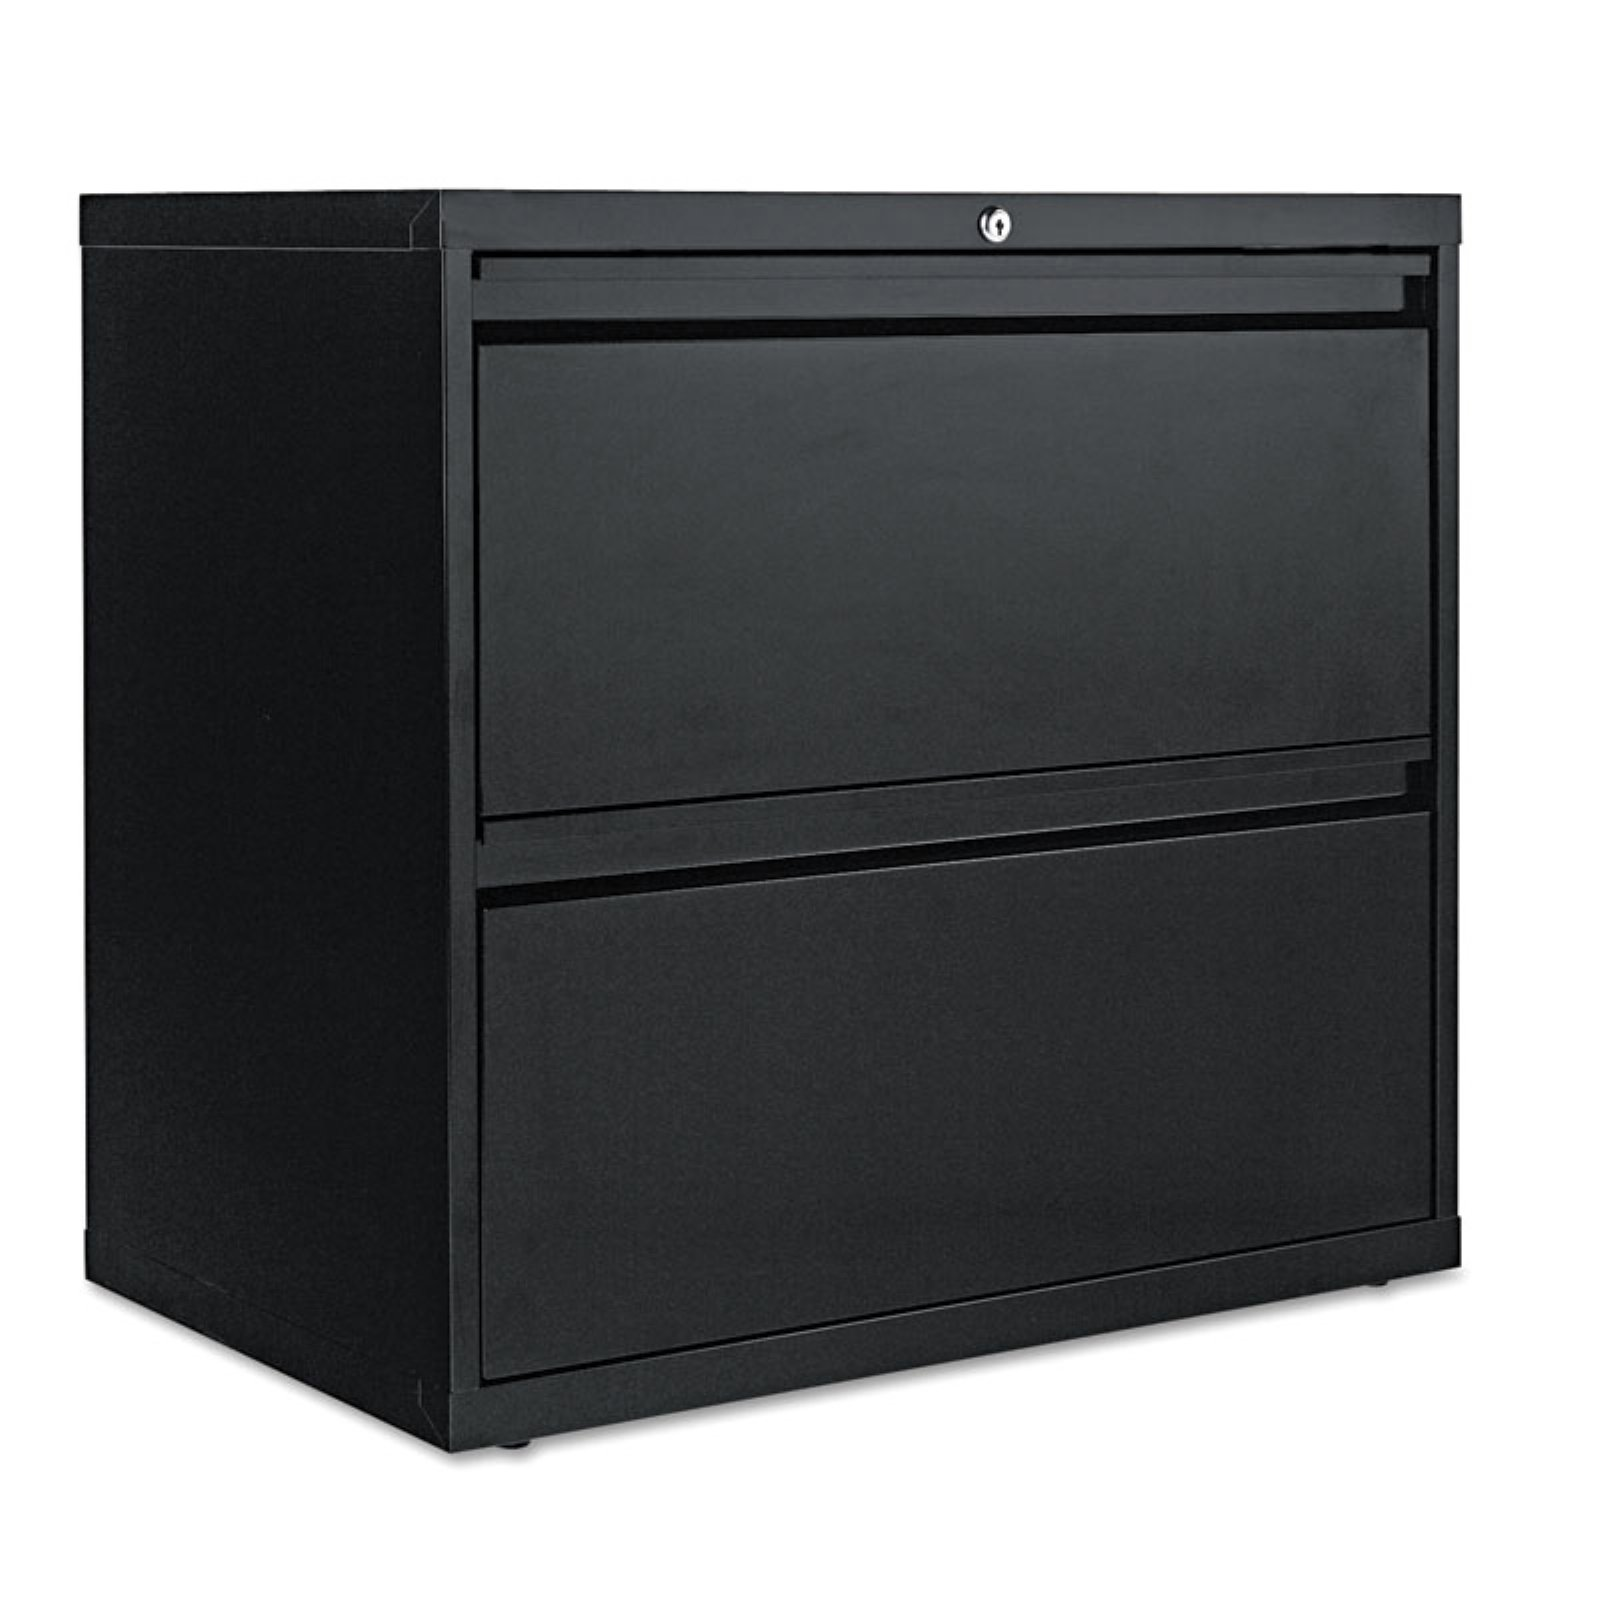 Sandusky Lee 800 Series 30 Inch 2 Drawer Lateral File